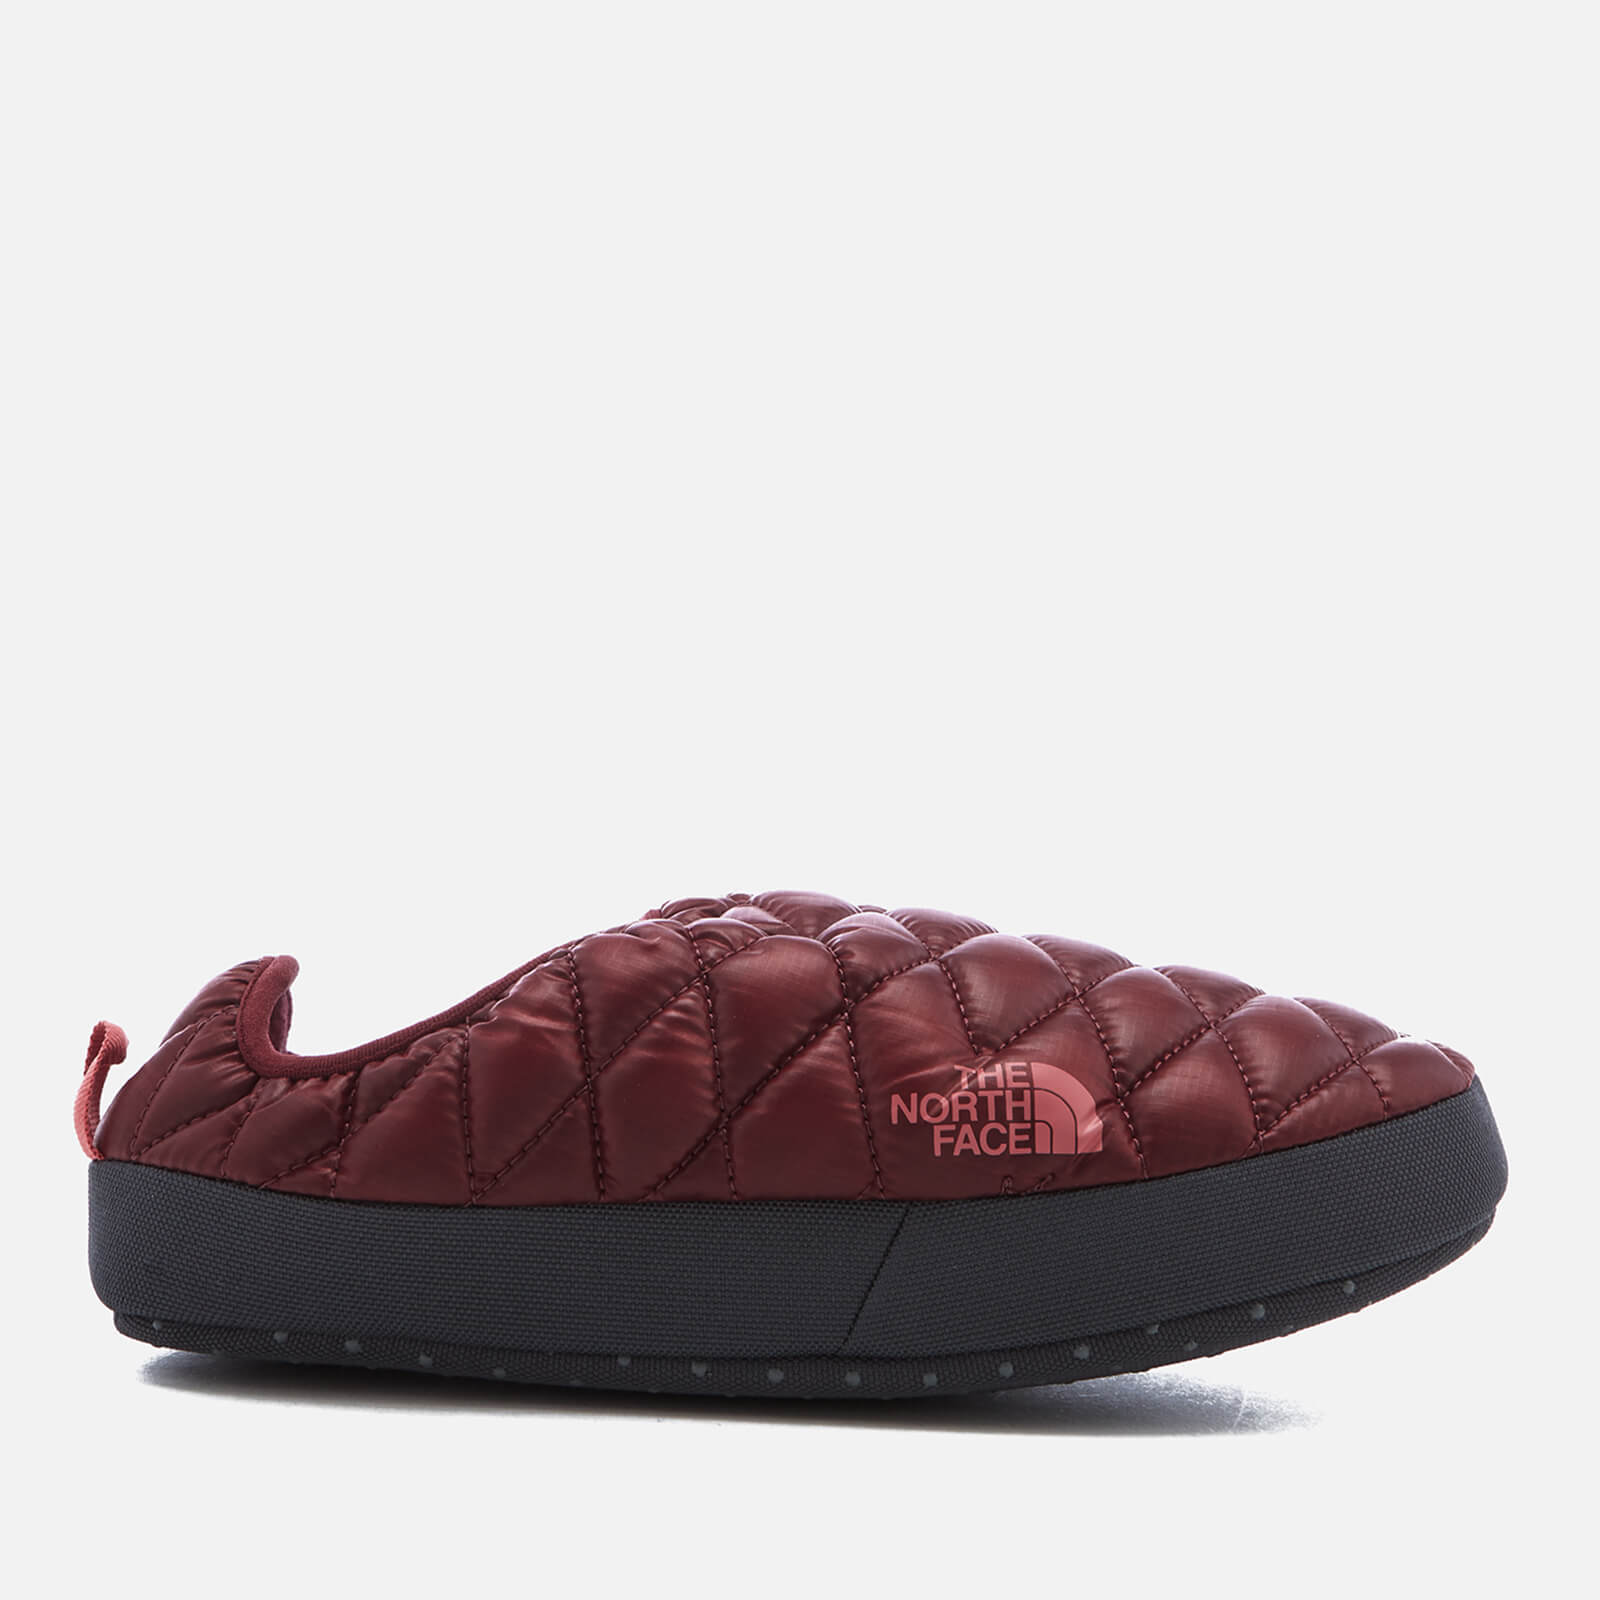 877d1bdae The North Face Women's Thermoball® Tent Mule IV Slippers - Shiny Barolo  Red/Faded Rose